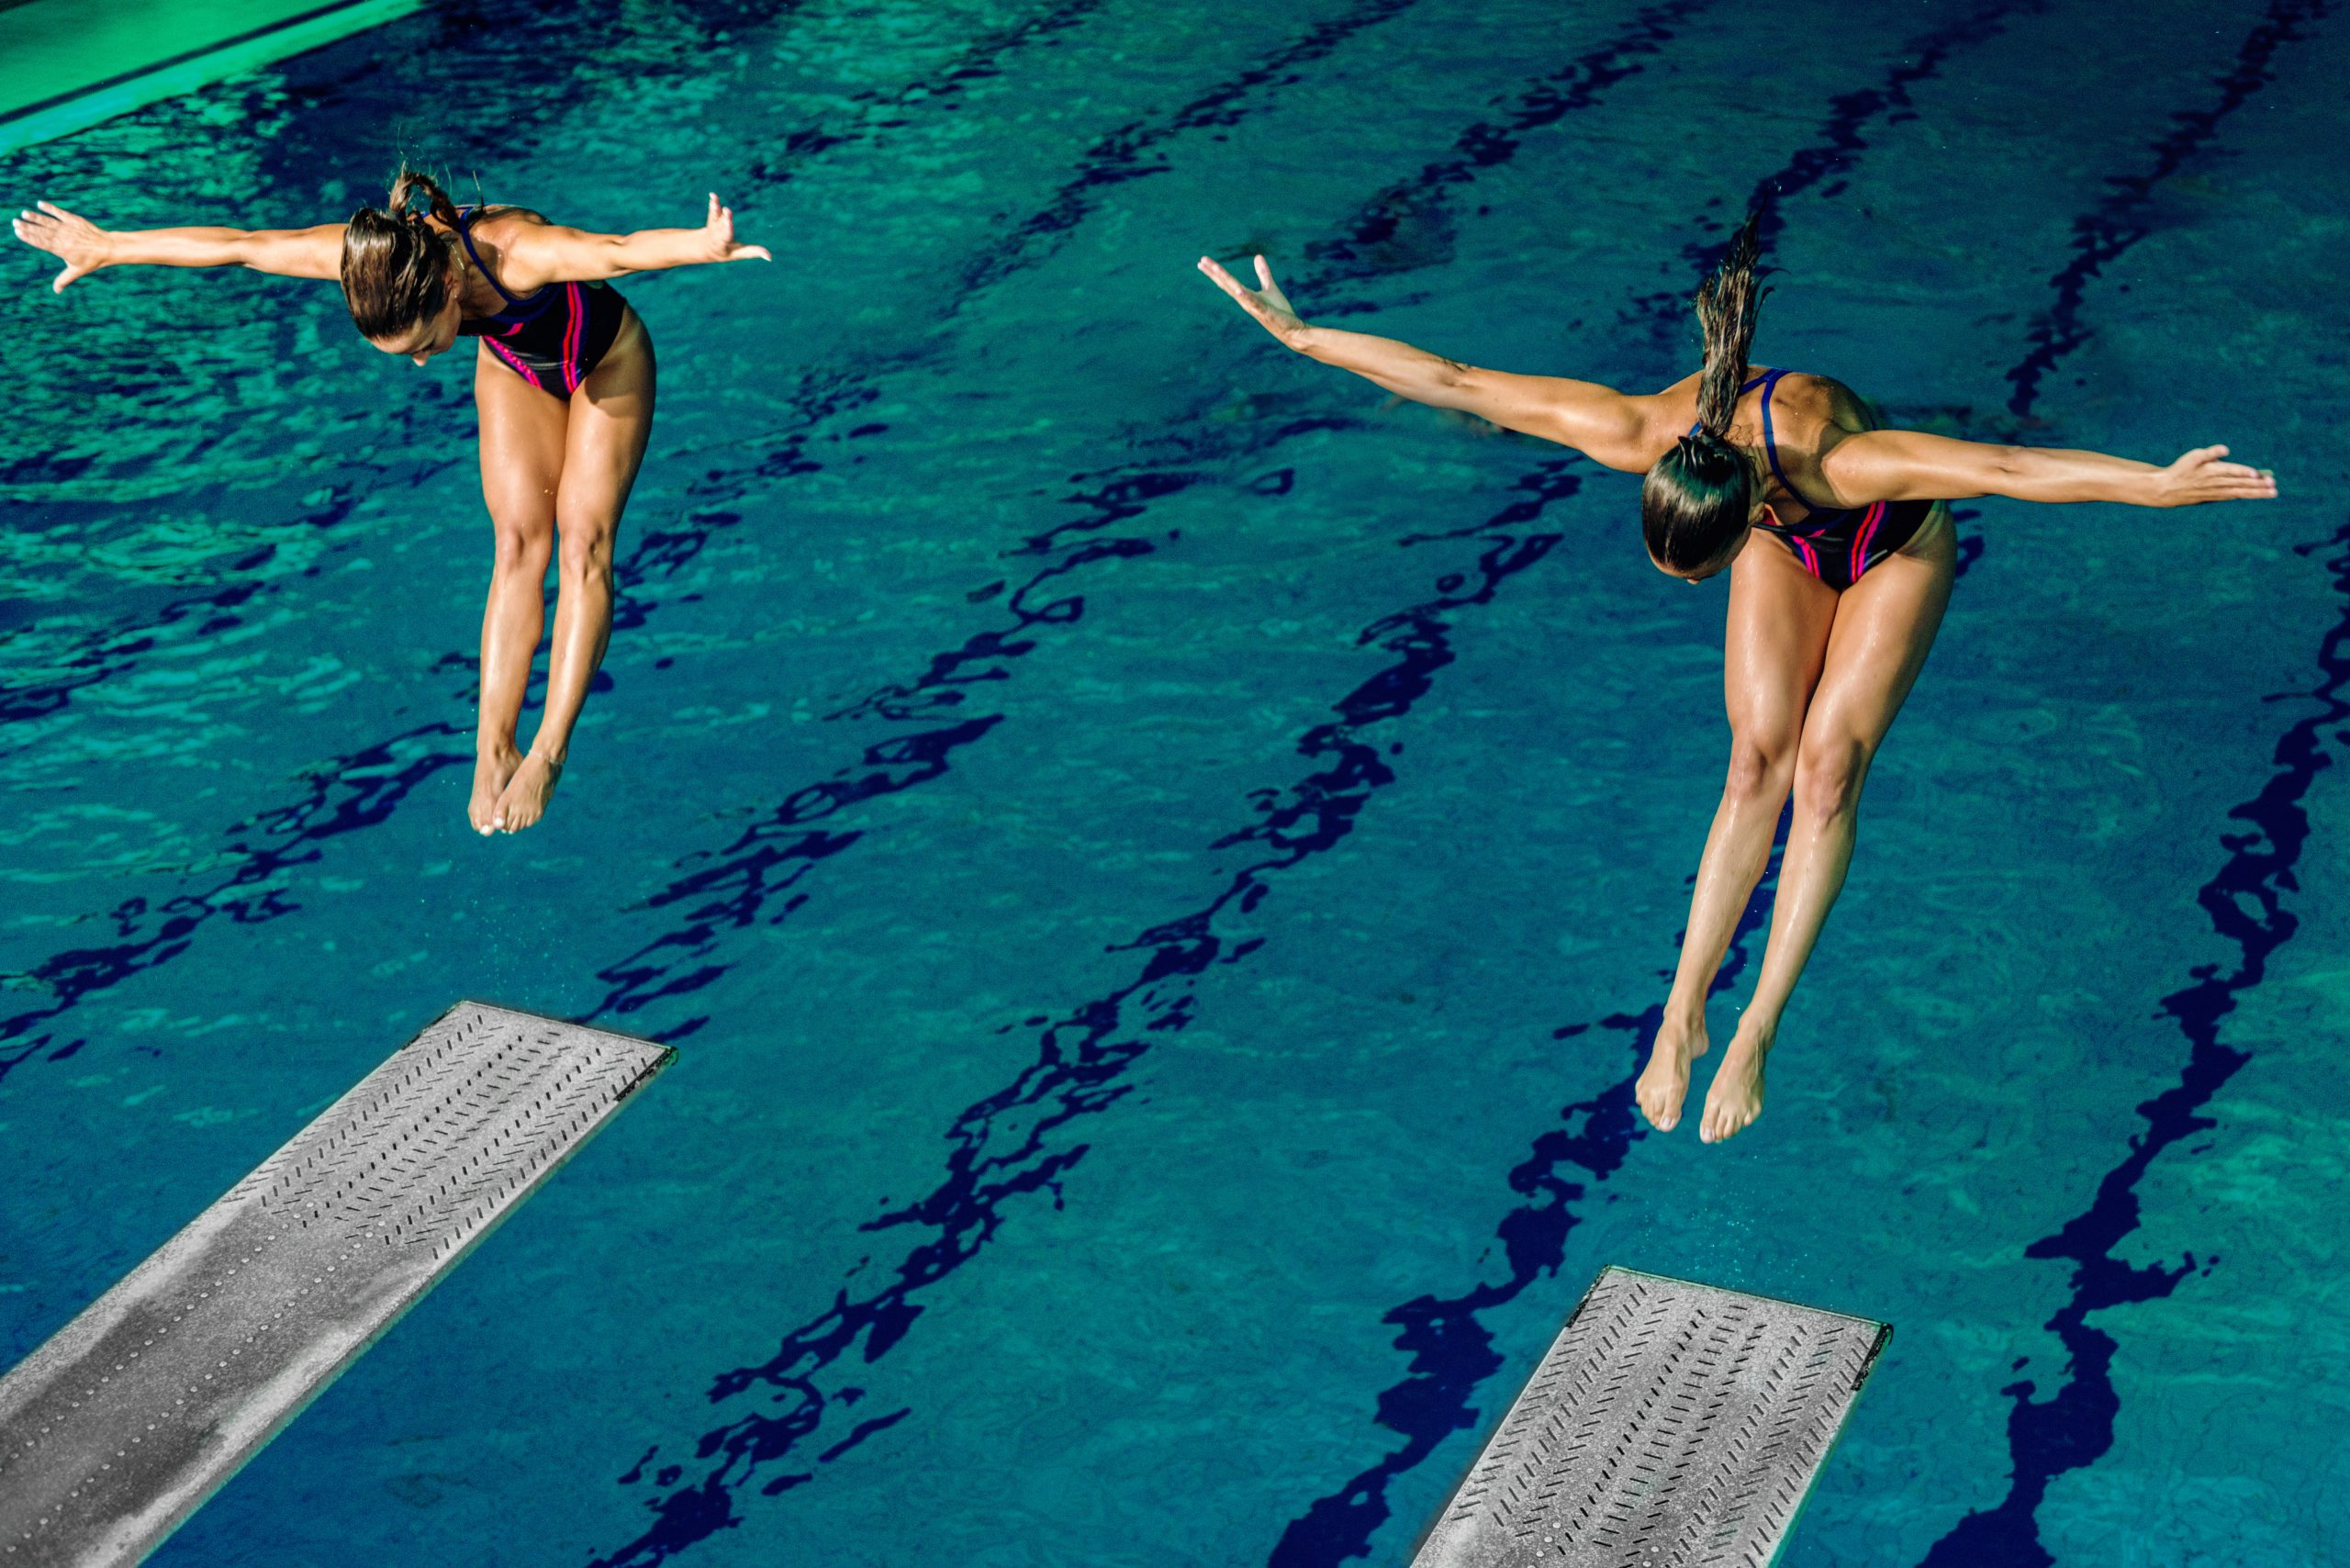 Two female divers on training or on competition.